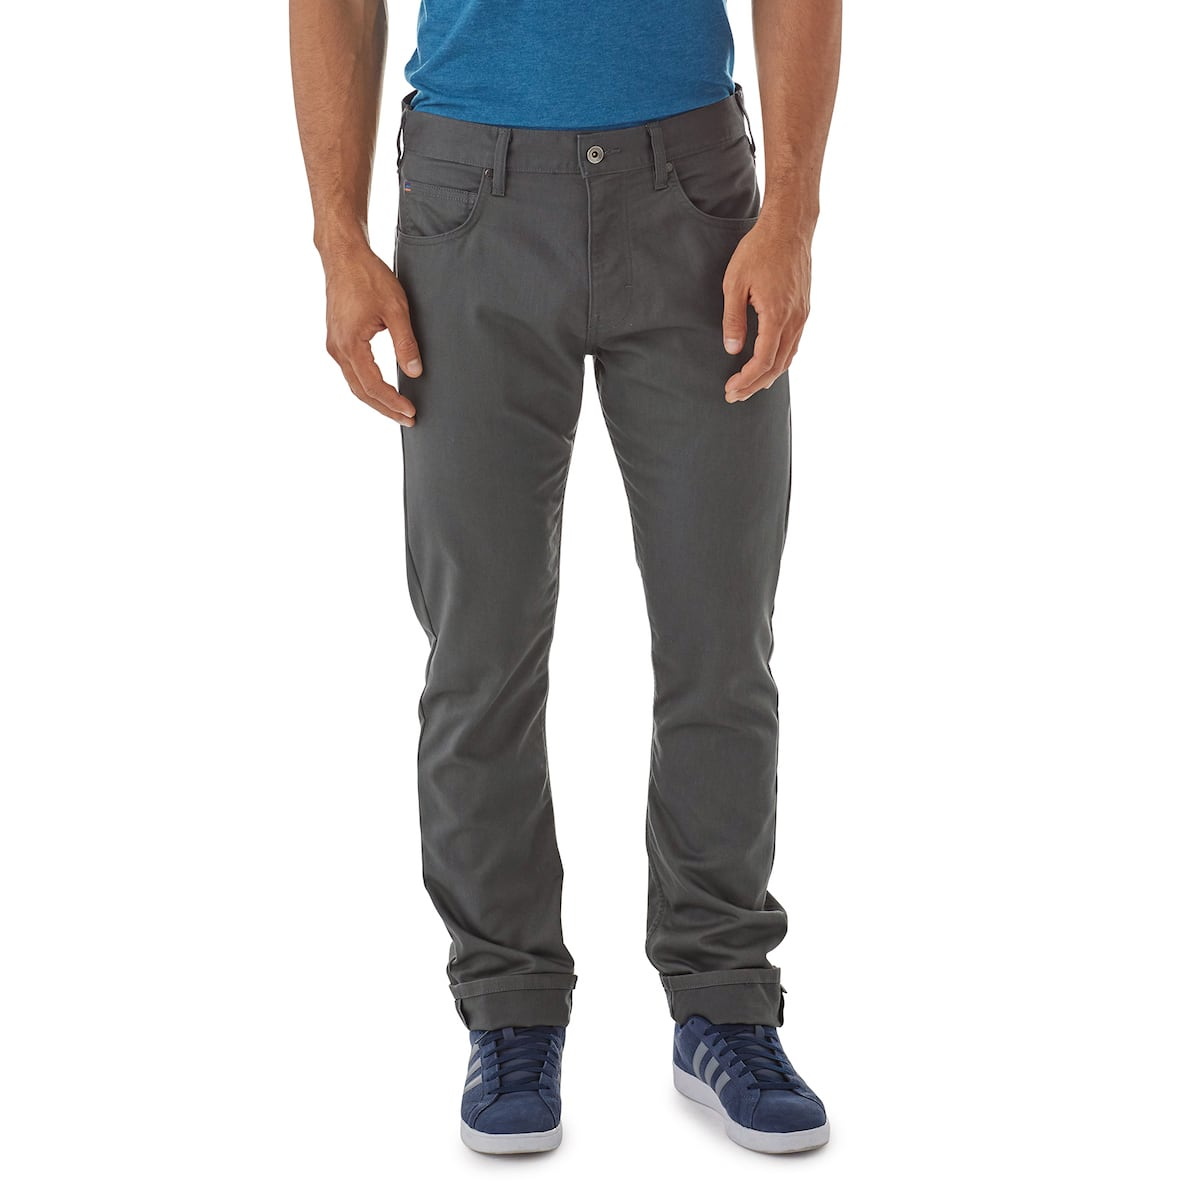 Patagonia-Performance Twill Jeans - Men's